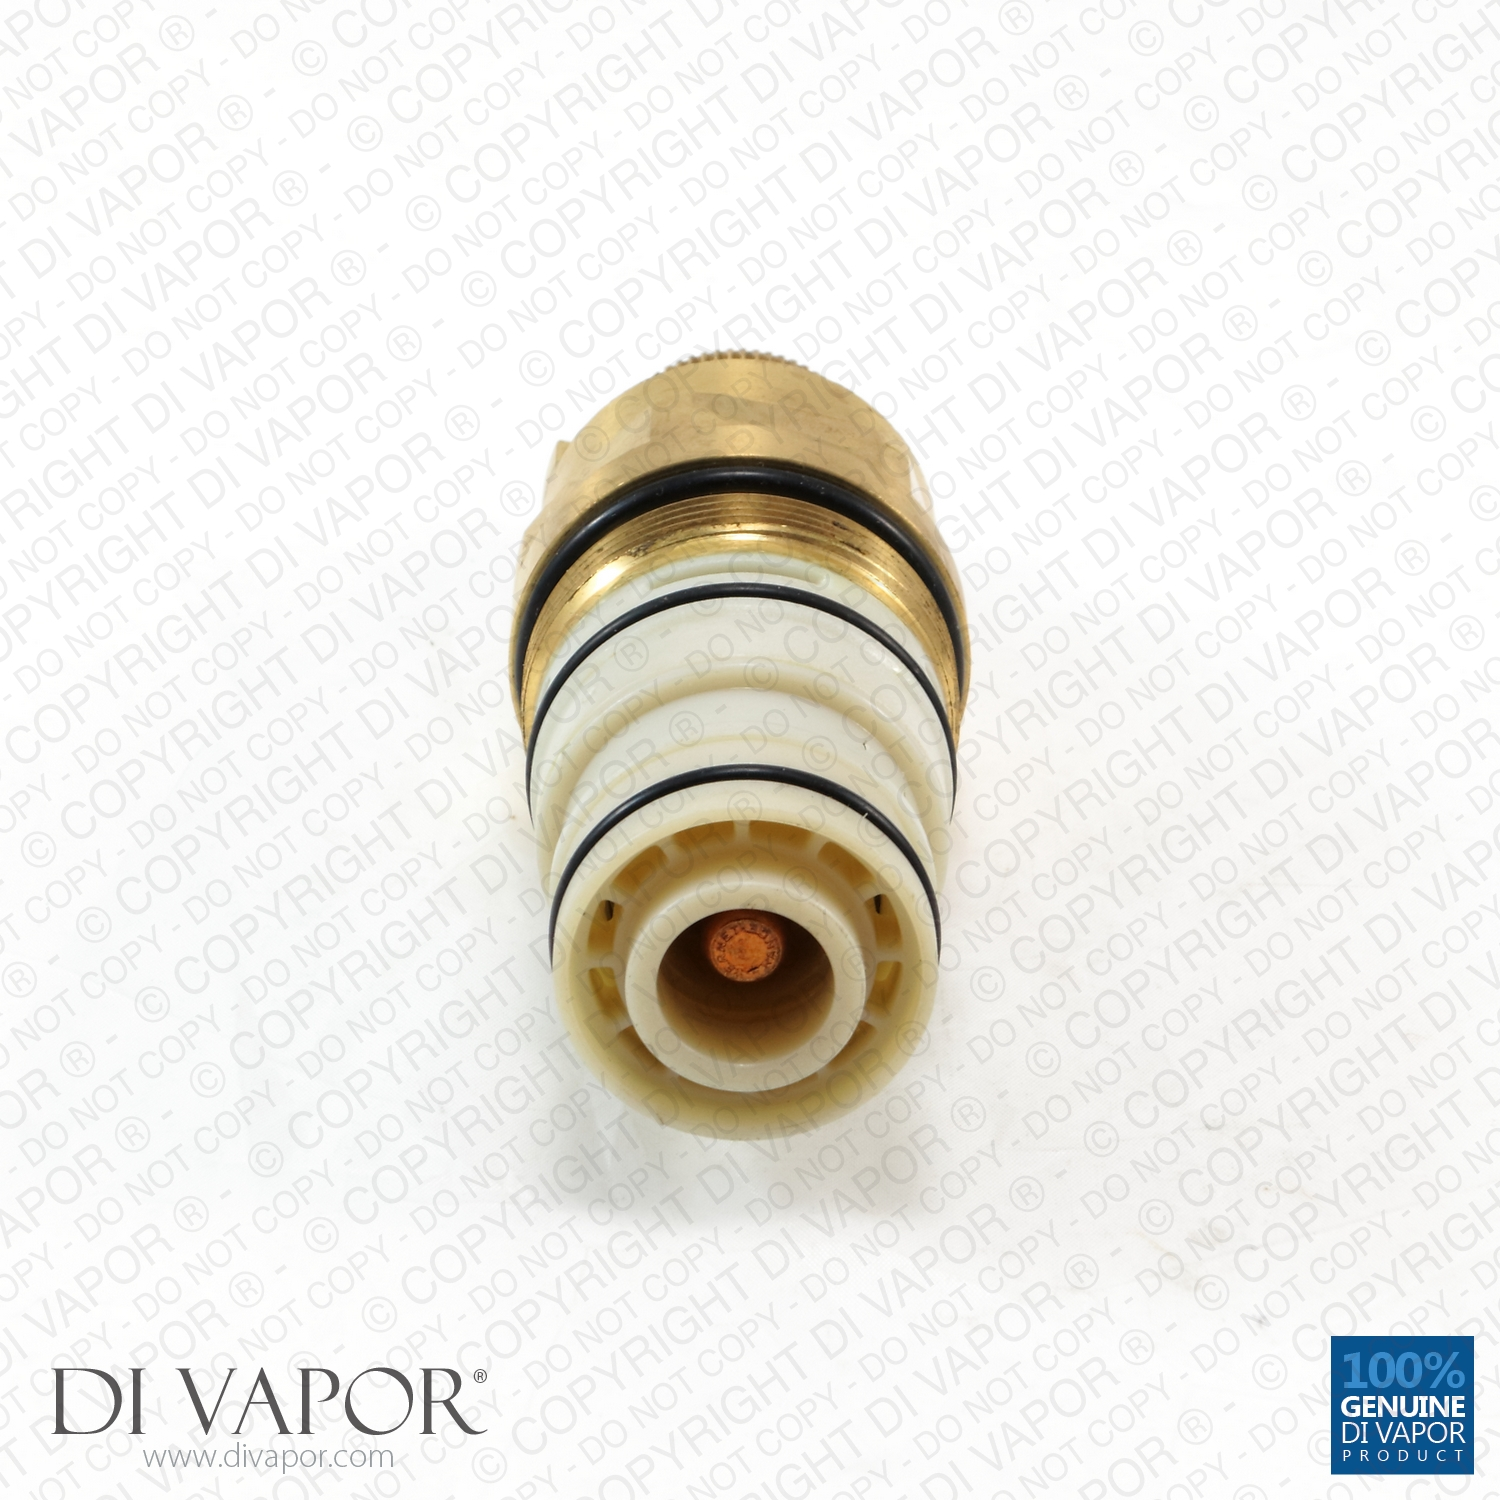 Inta I308088 Thermostatic Cartridge For I Plus Shower Valves